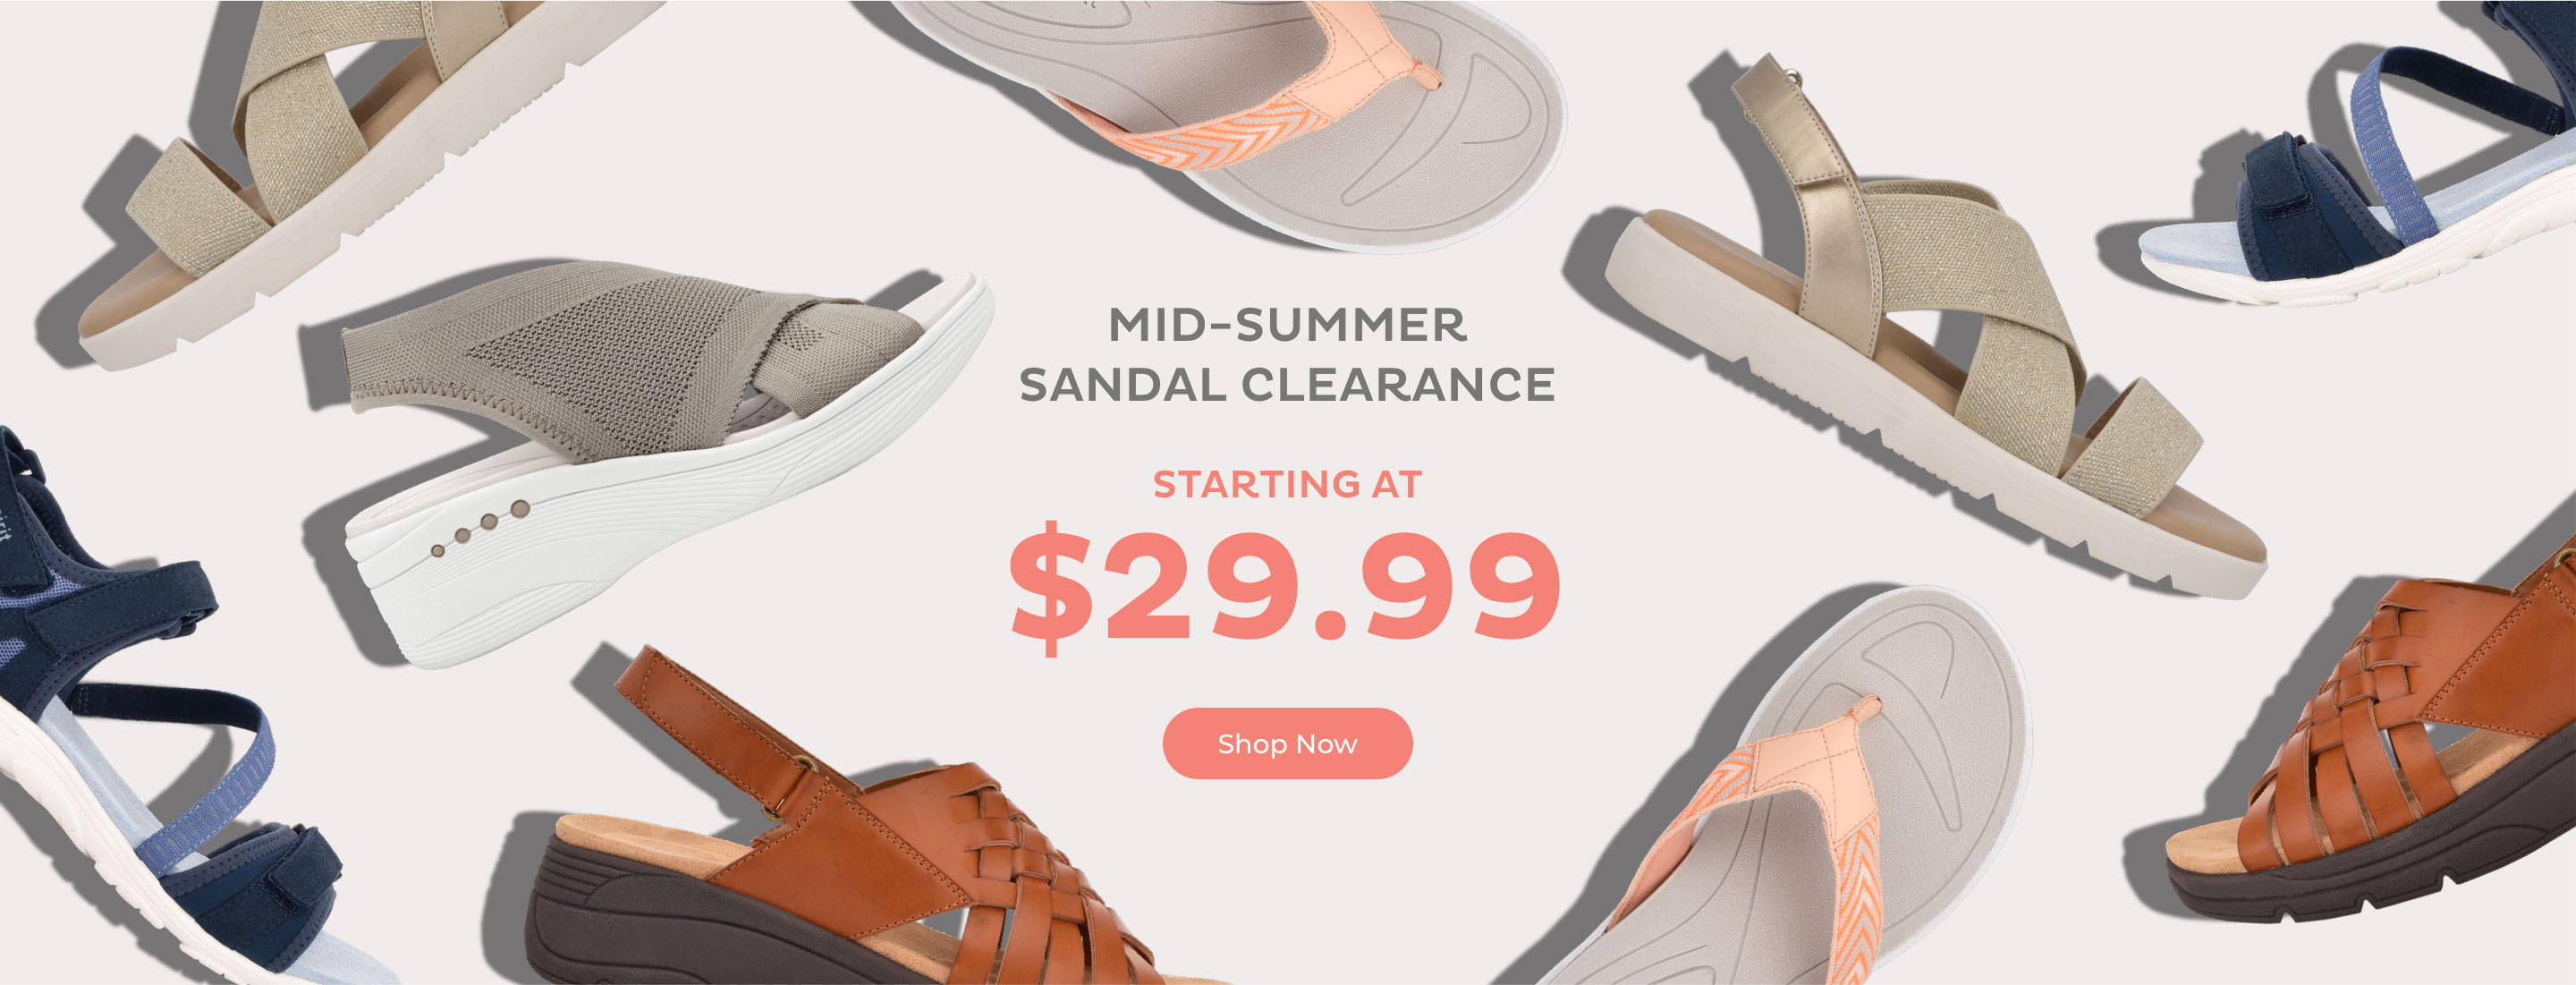 Mid Summer Sandal Clearance Starting at $29.99